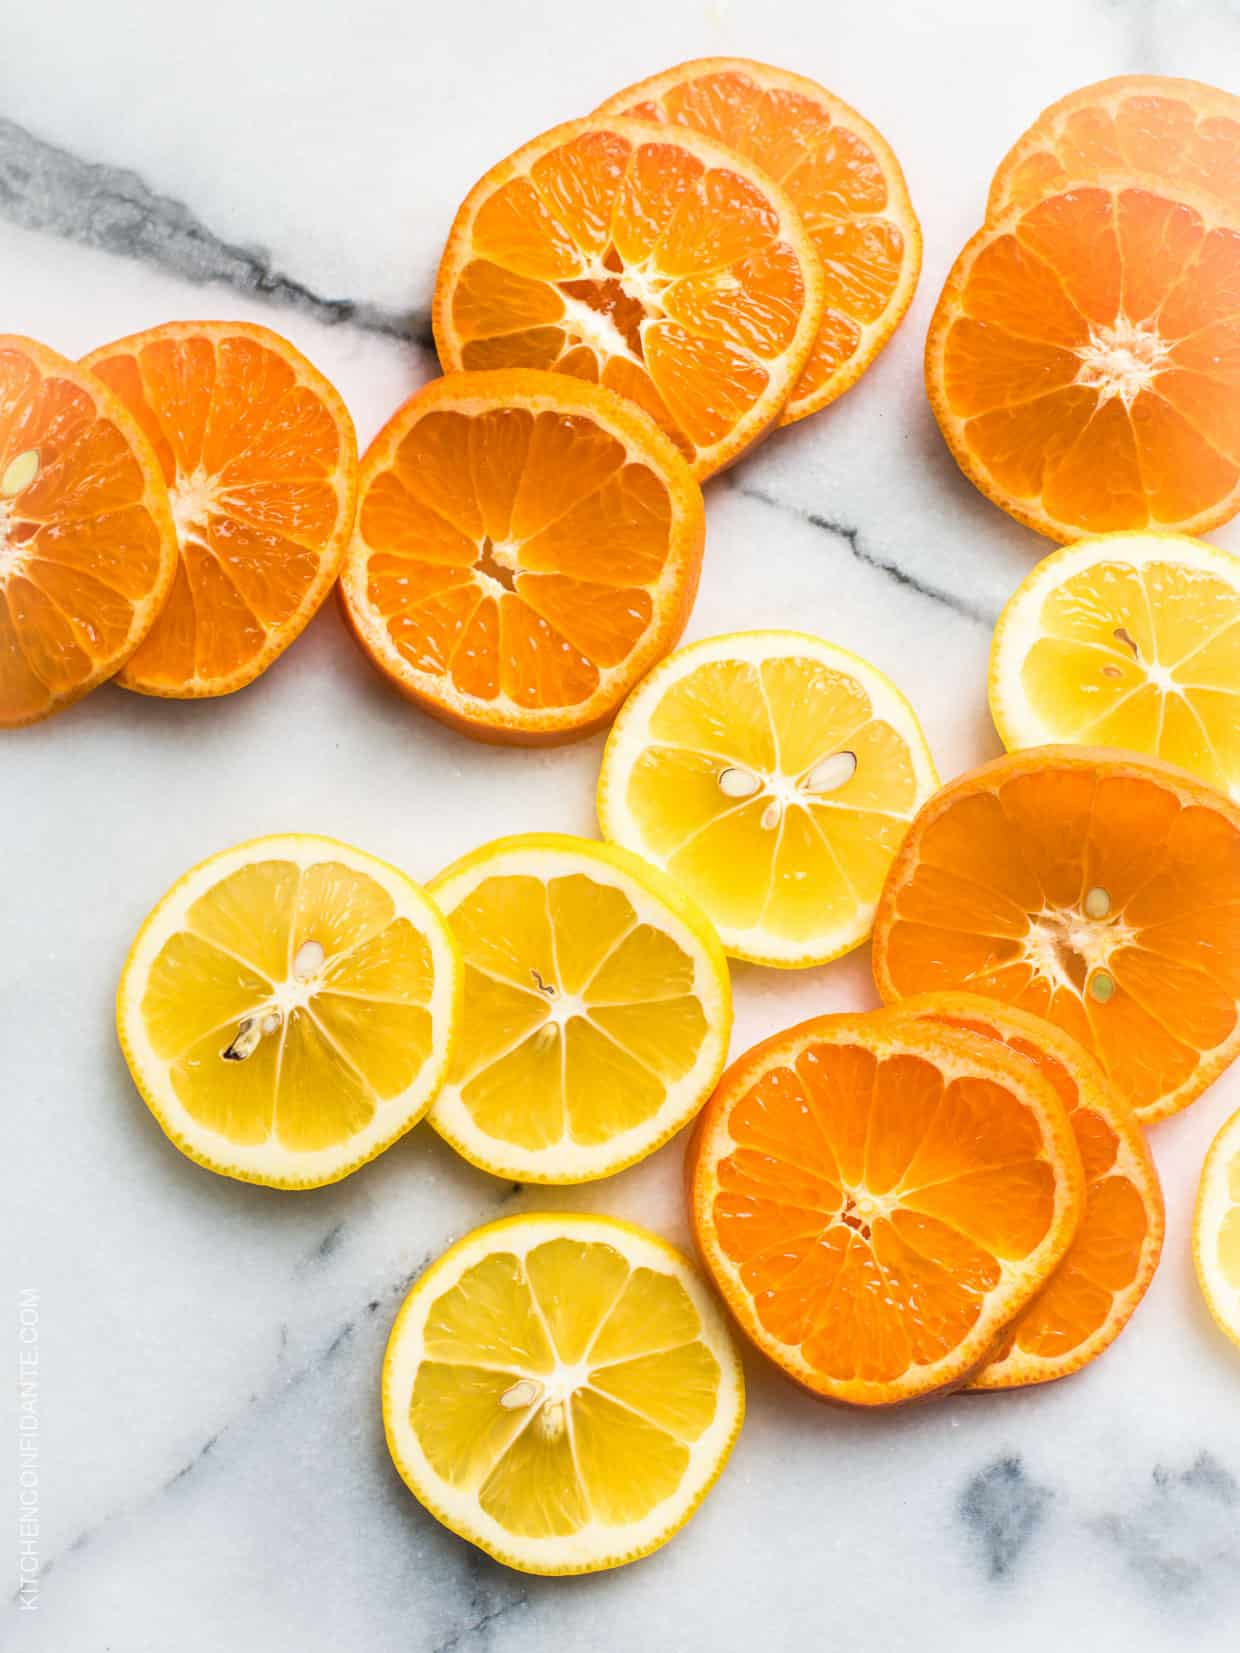 Slices of citrus fruit on a marble surface.